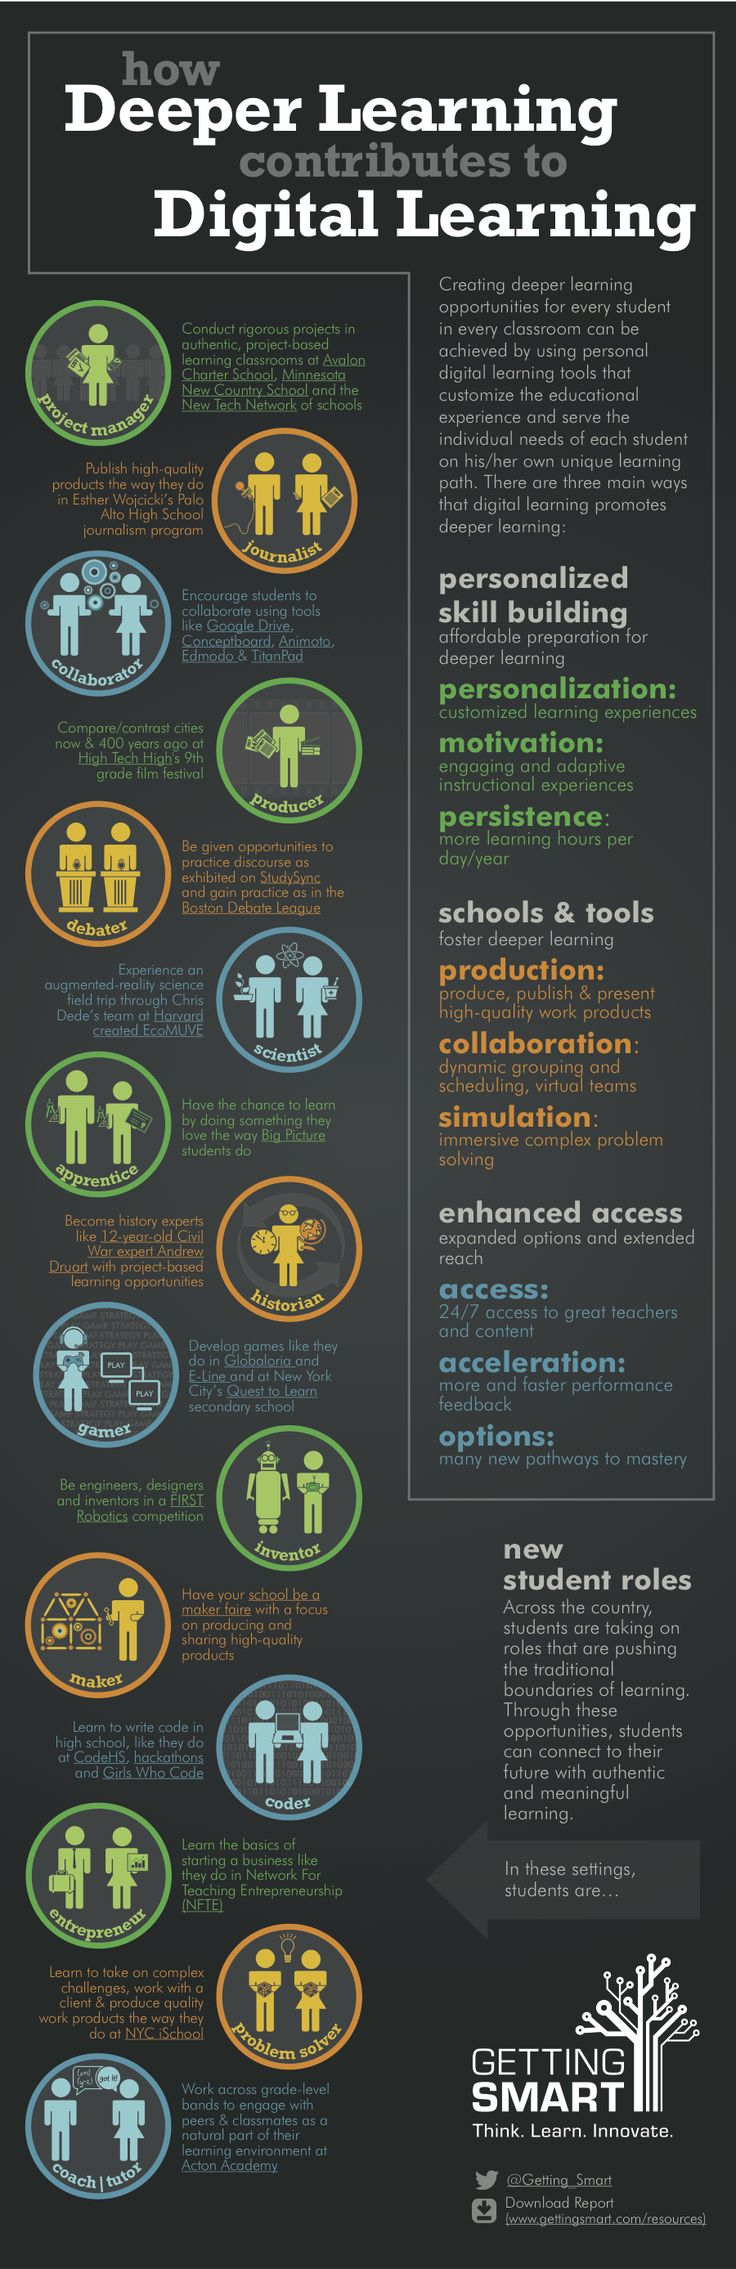 Digital Learning, Deeper Learning